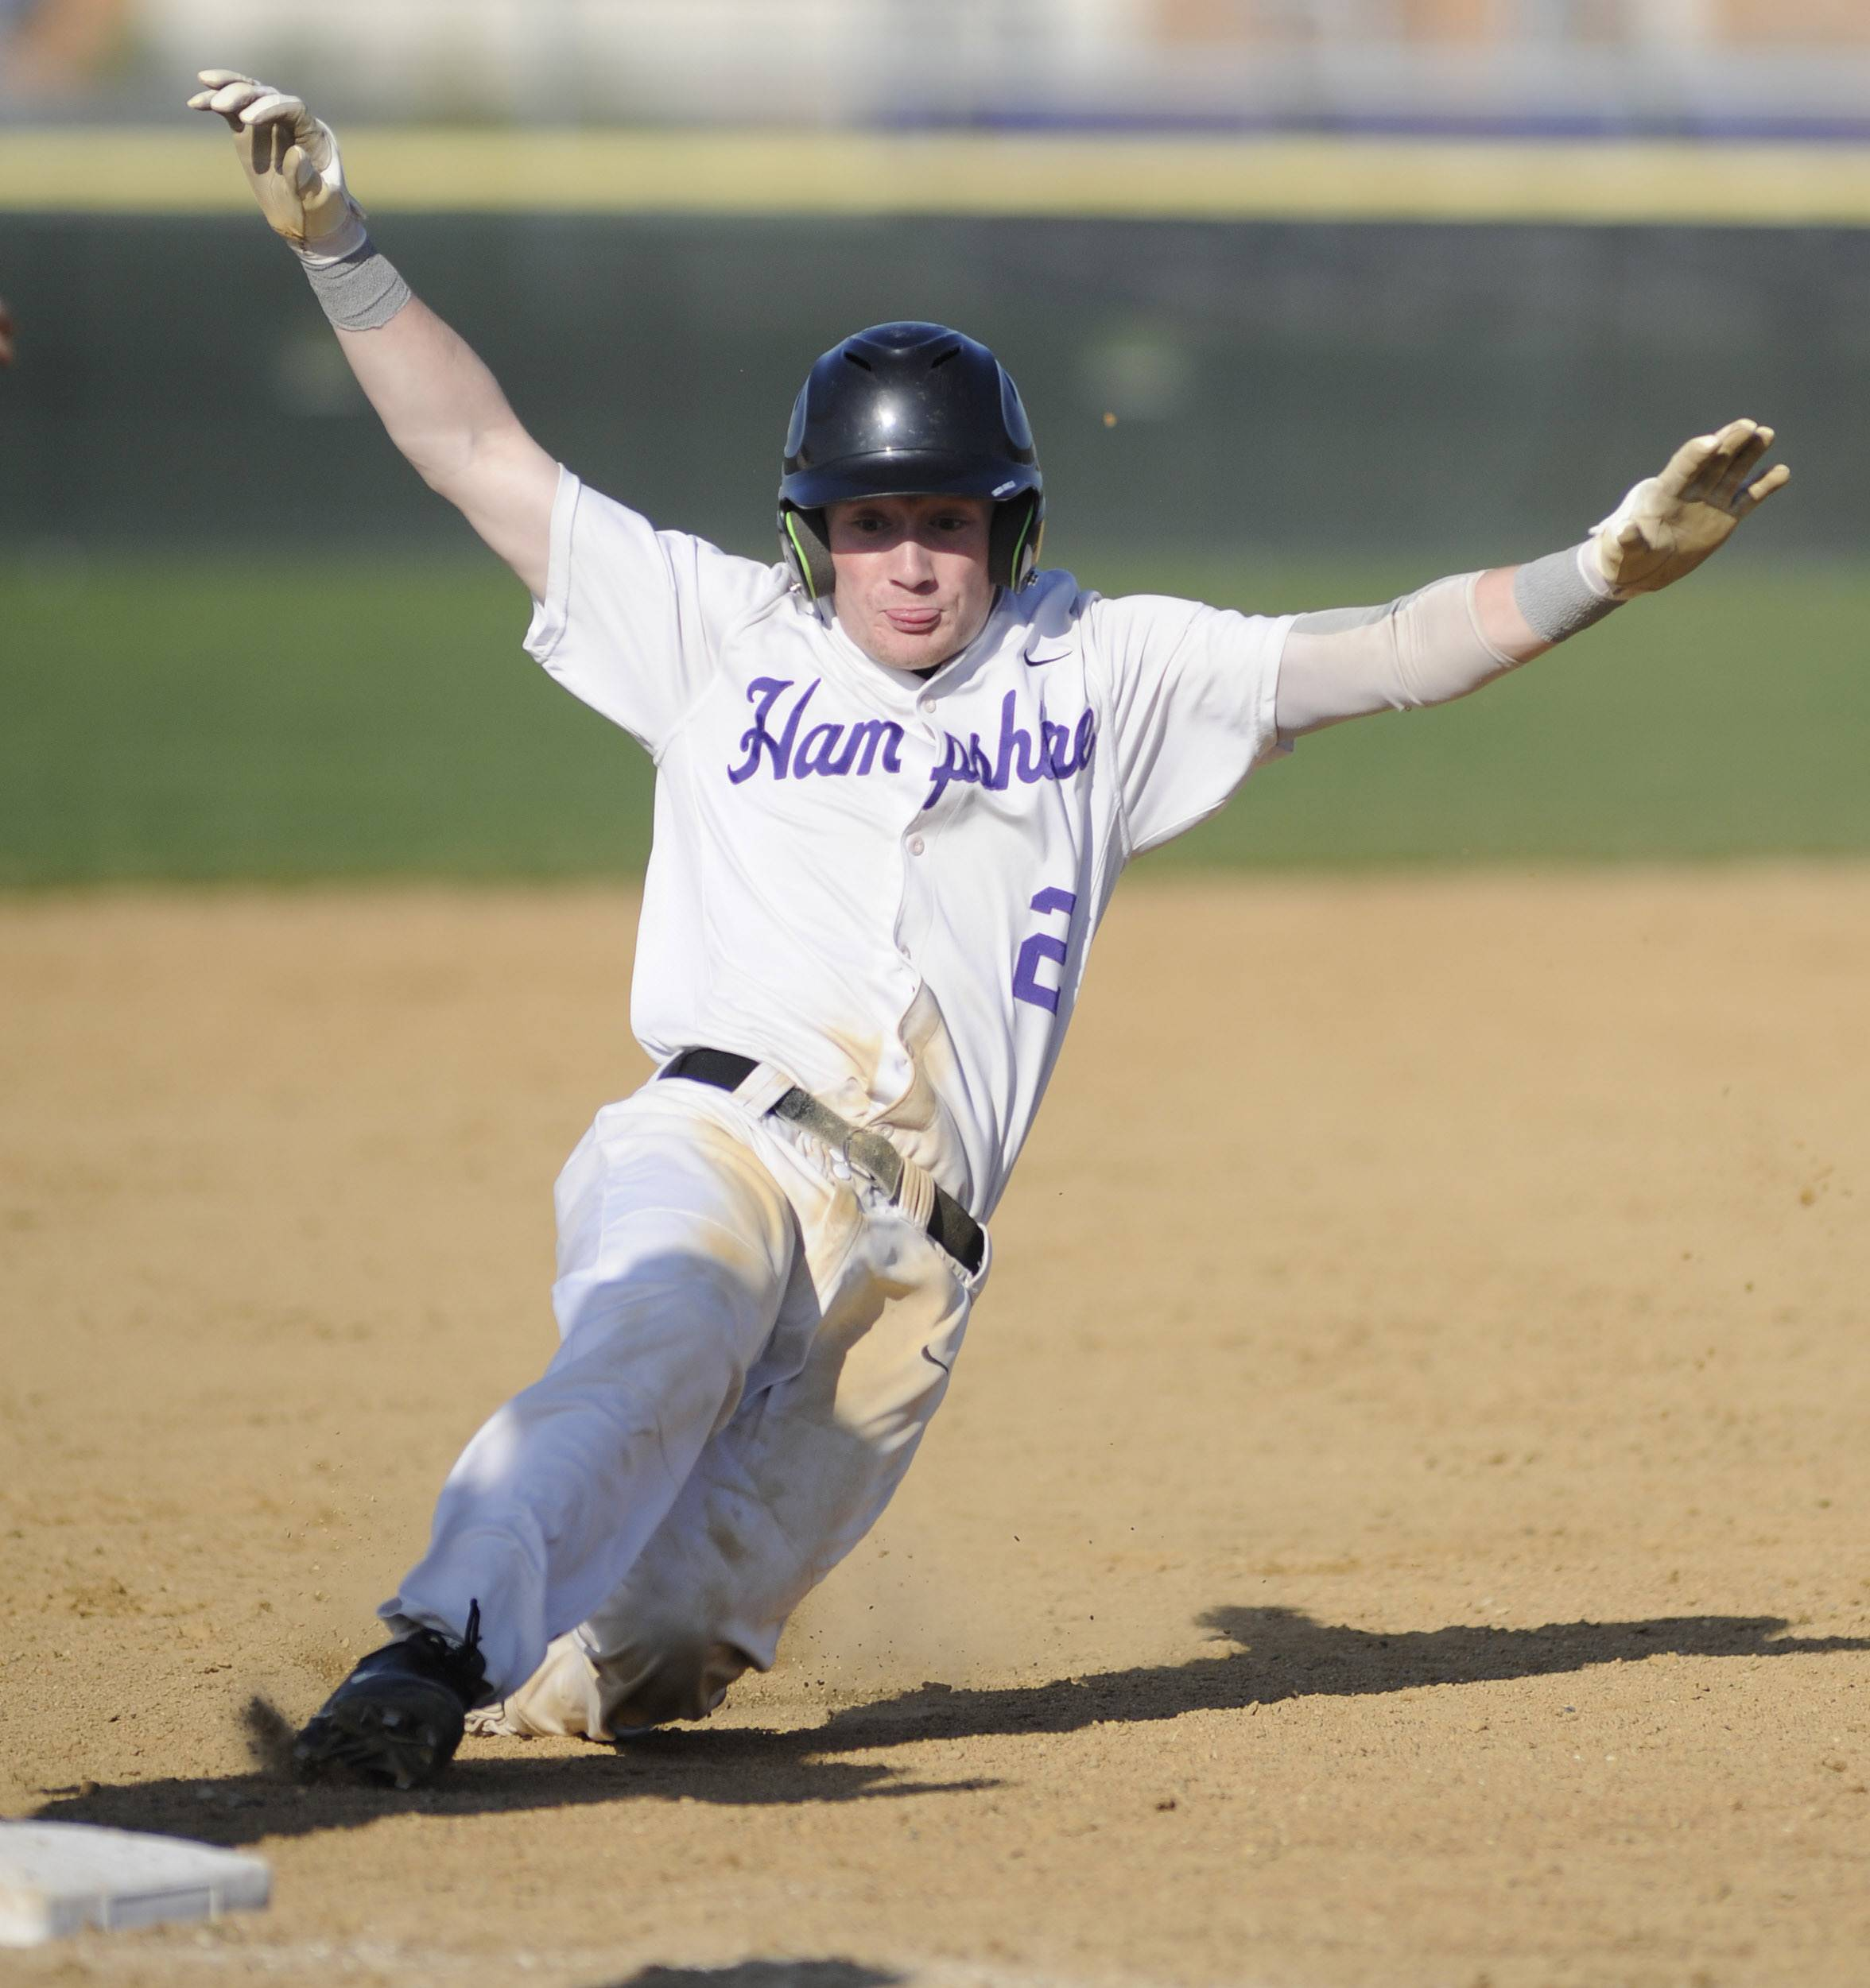 Hampshire's RJ Consigny slides safely into third base in the second inning vs. Grayslake Central Friday.